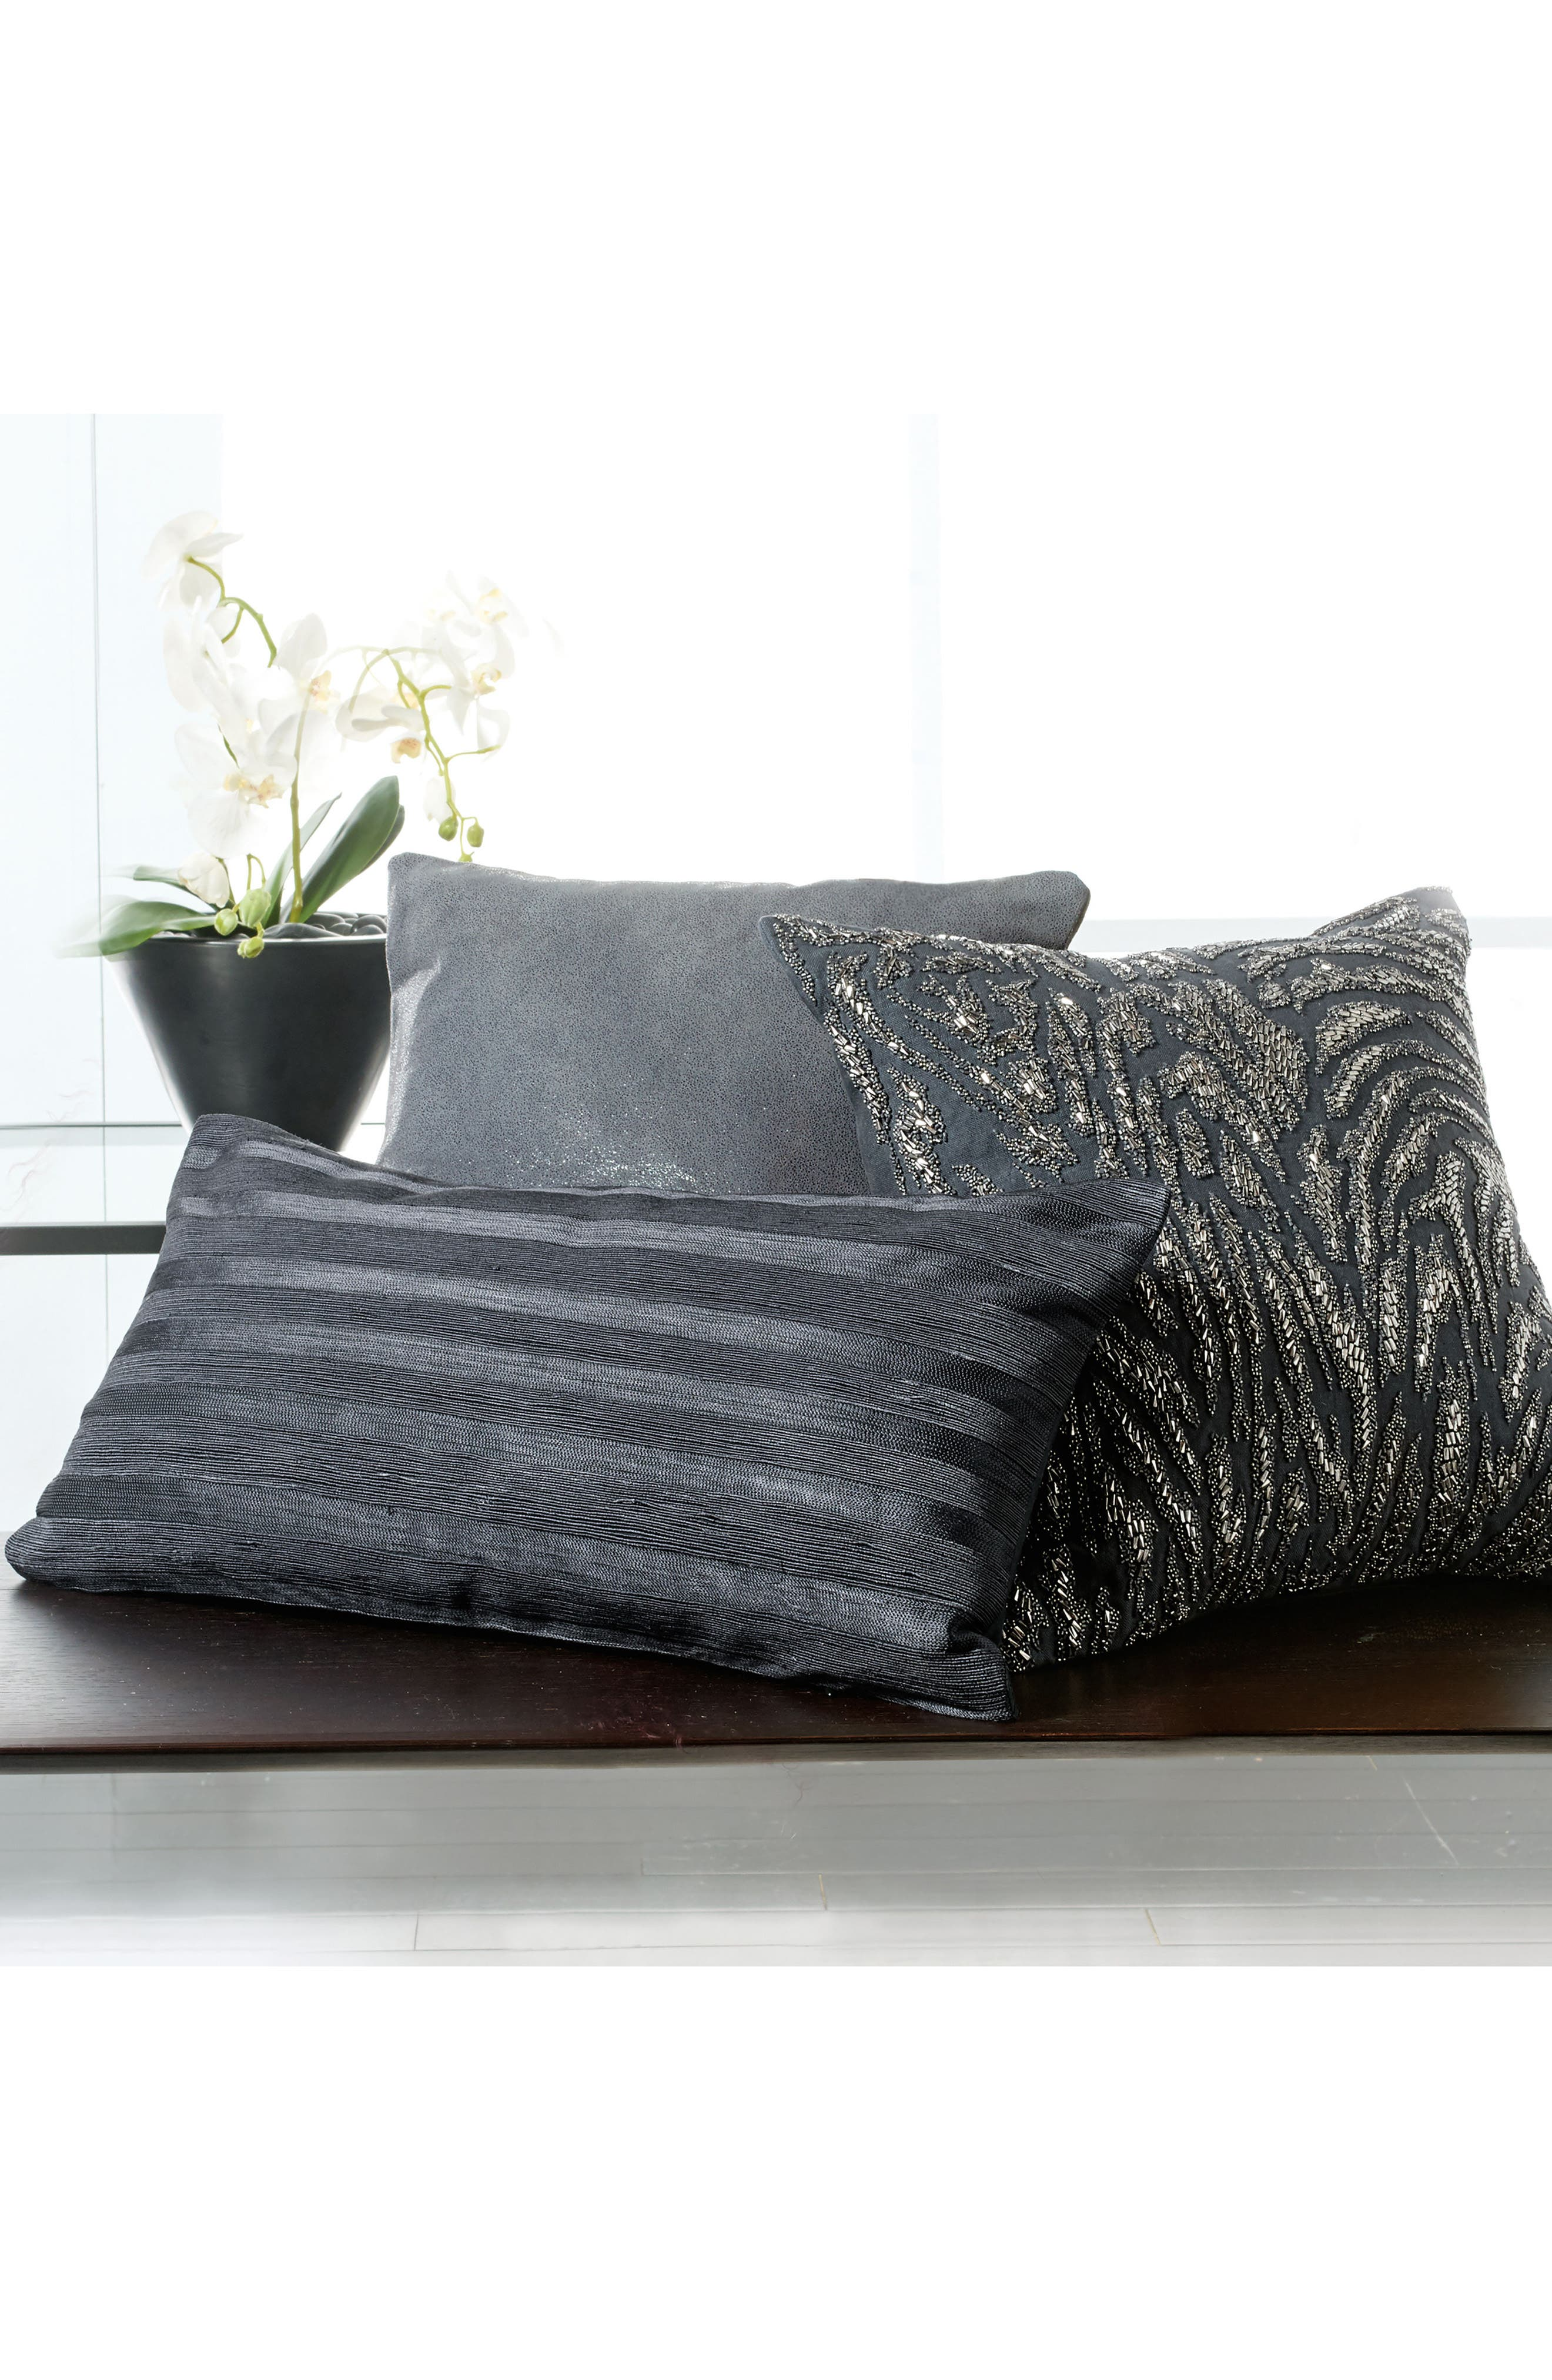 Moonscape Leather Accent Pillow,                             Alternate thumbnail 5, color,                             020